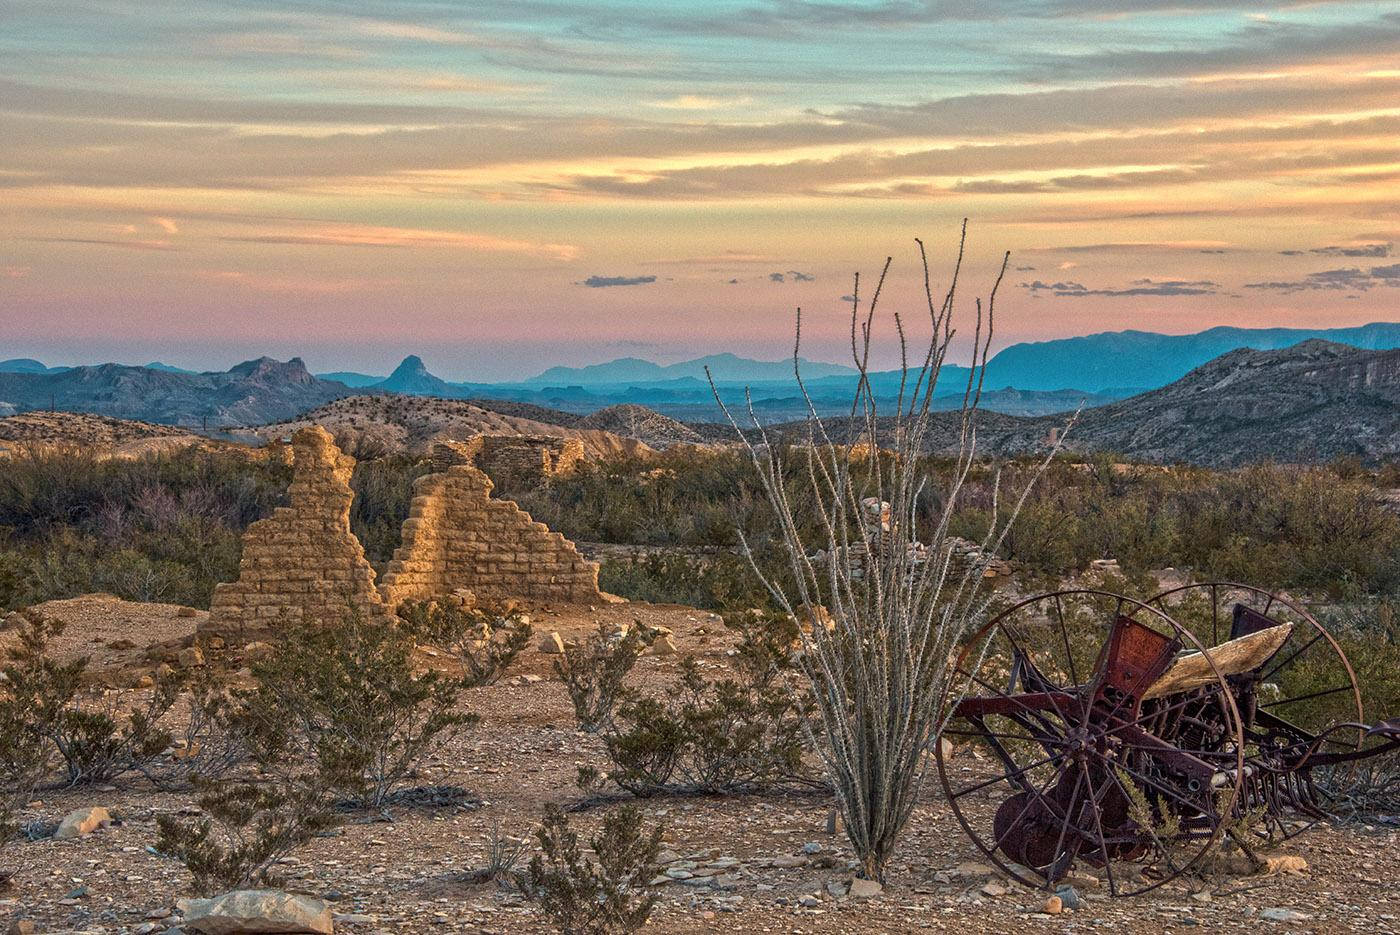 Days - West Texas Hill Country landscape with sunset, flora, and wagon wheels